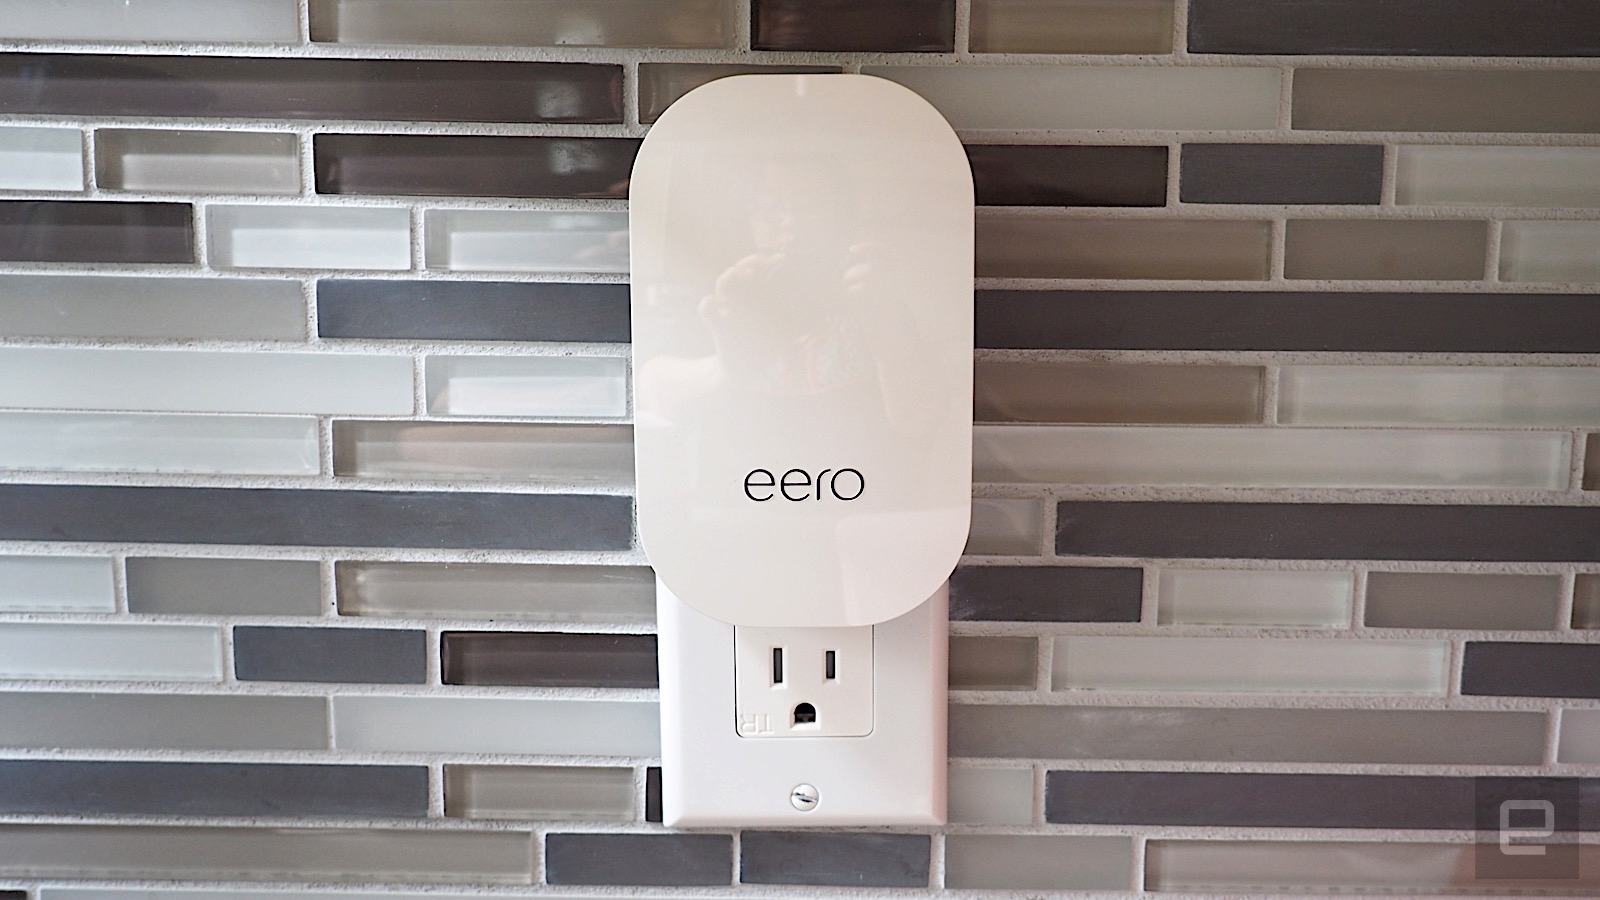 Eero S New Mesh Wifi System Packs More Power In A Pretty